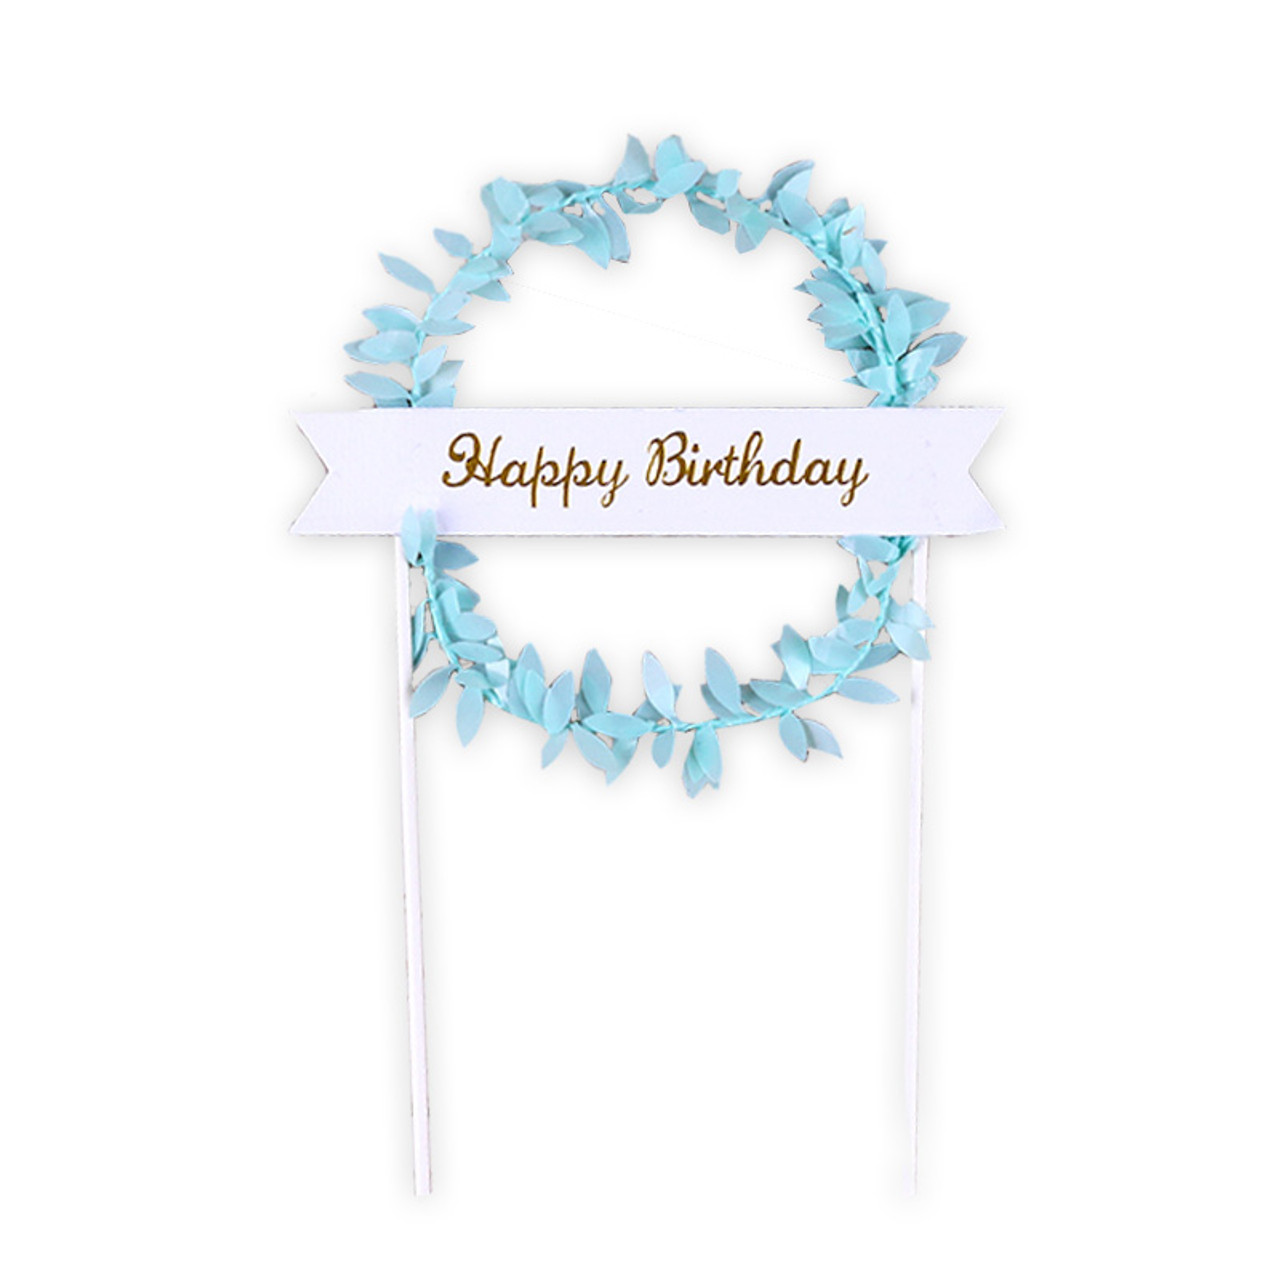 Happy Birthday Banner Wreath Cake Topper